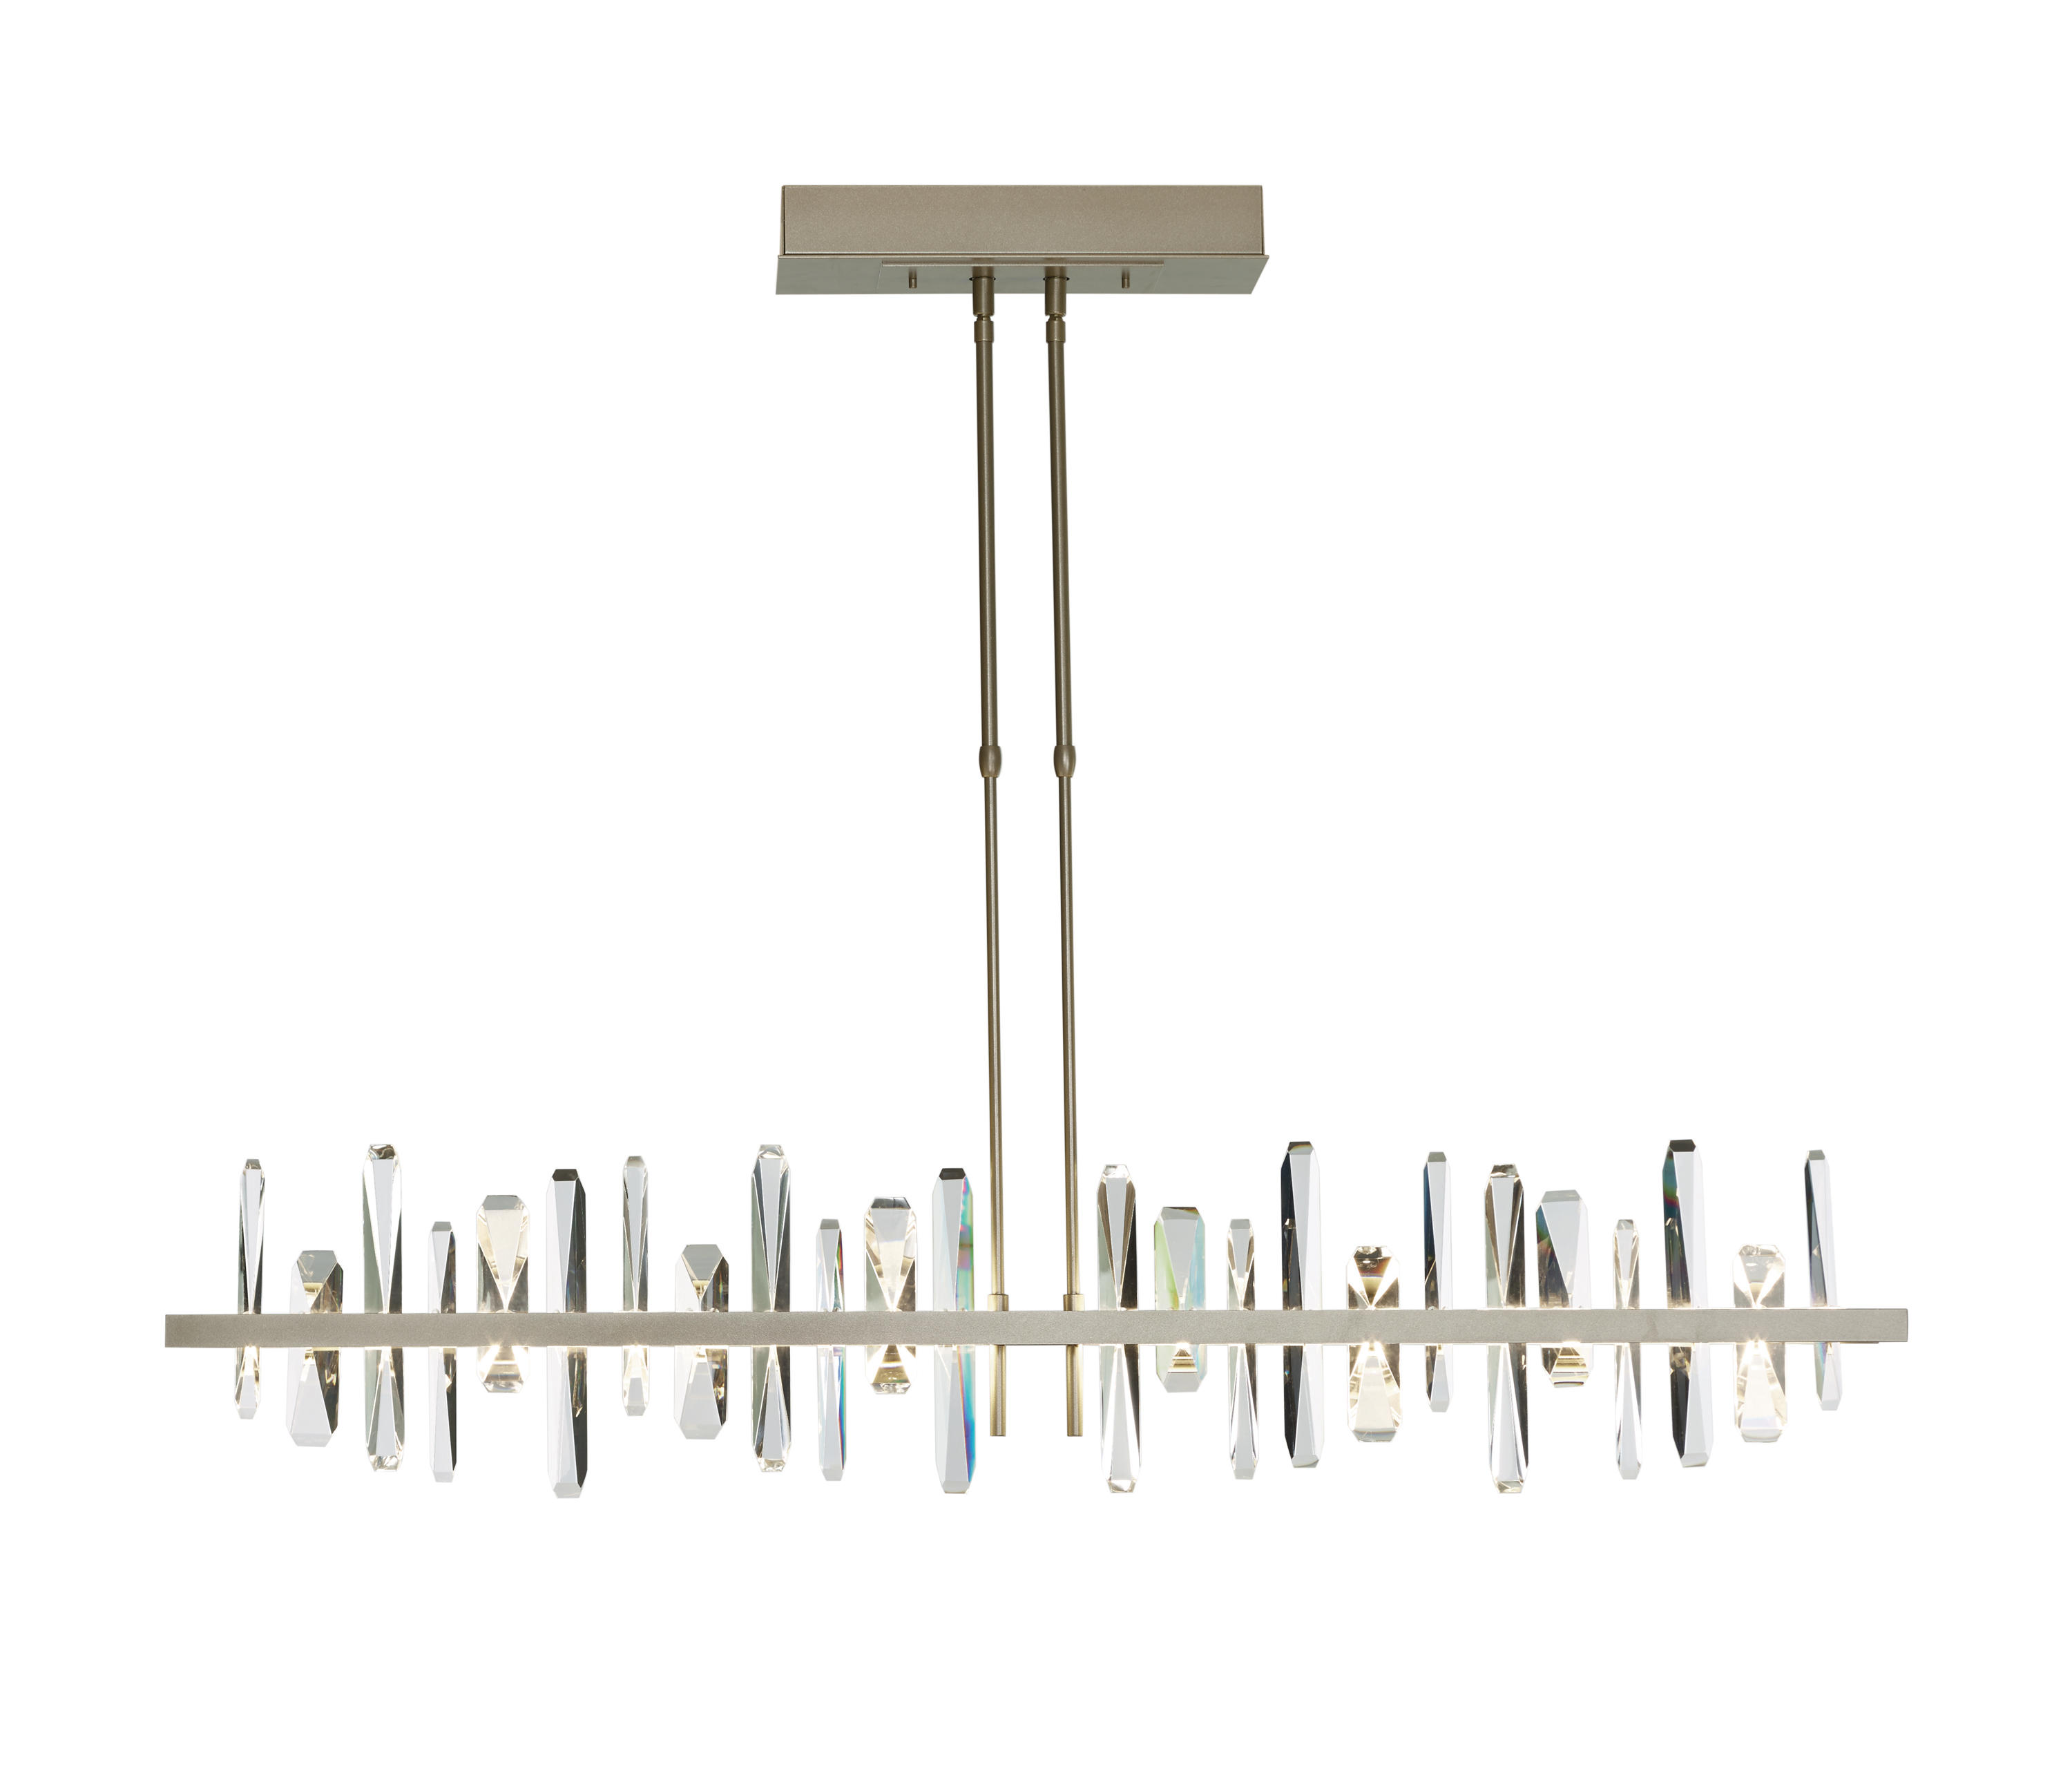 Solitude large led pendant suspended lights from hubbardton forge solitude large led pendant by hubbardton forge suspended lights aloadofball Image collections